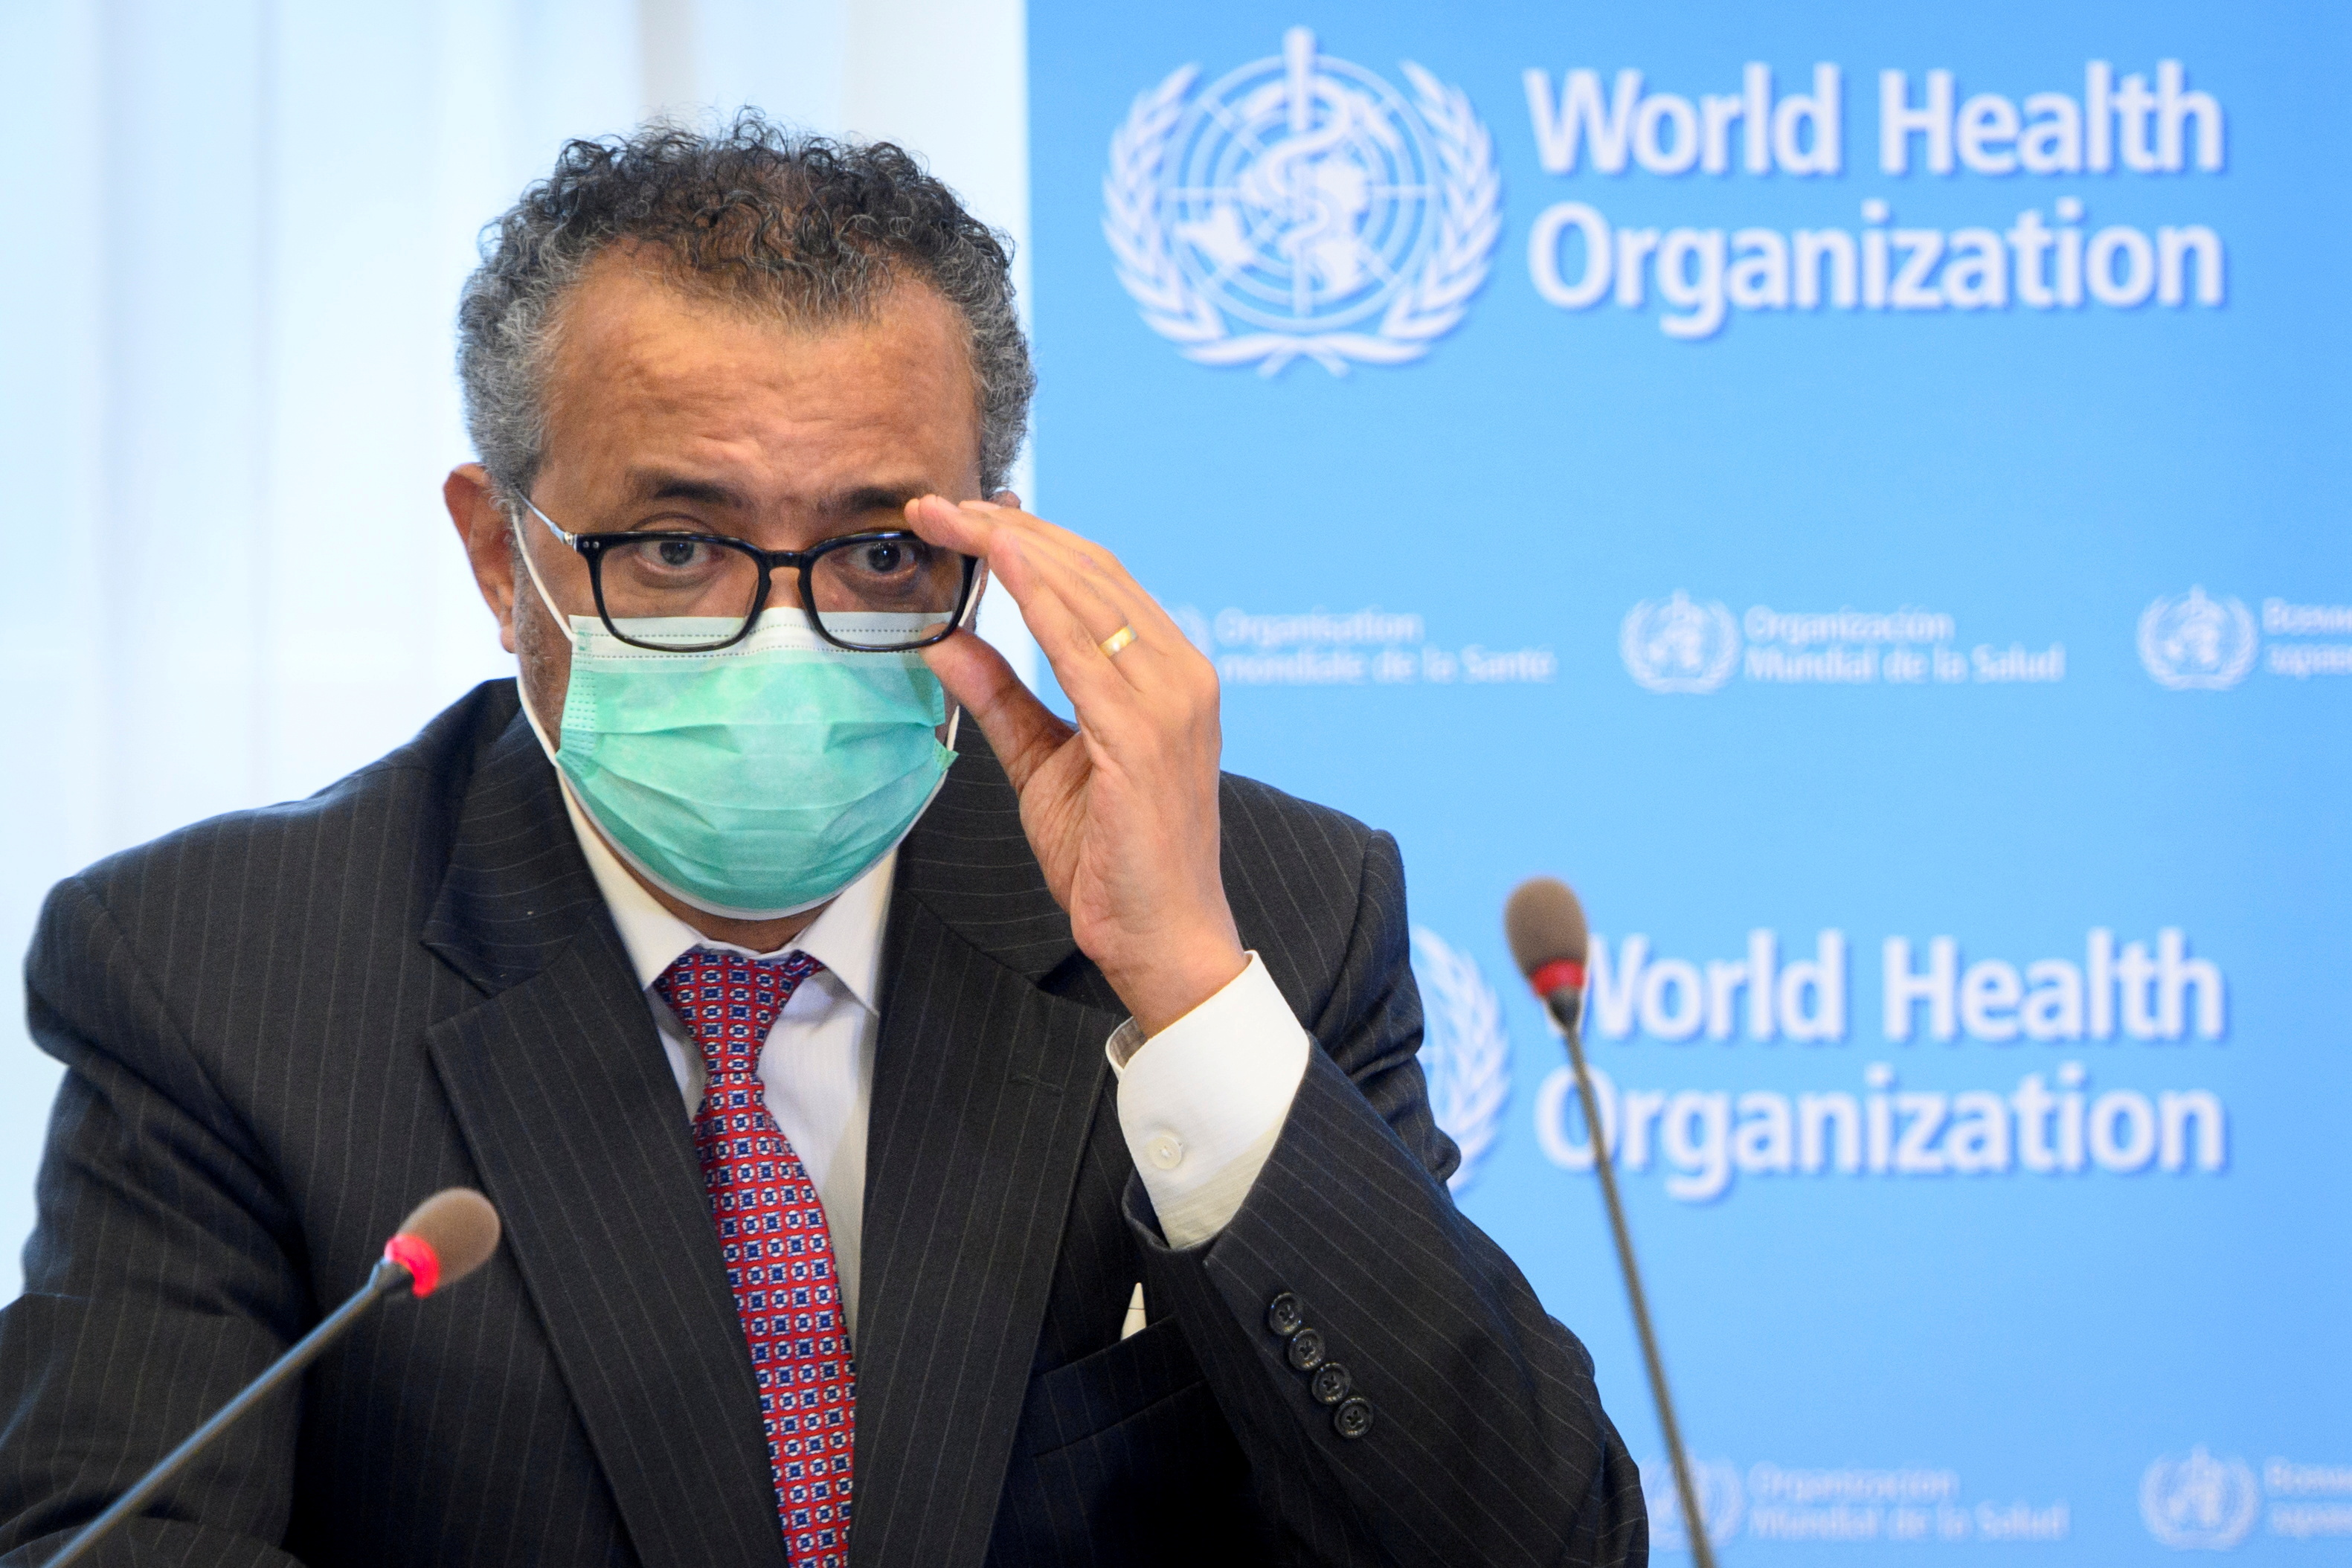 World Health Organization (WHO) Director General Tedros Adhanom Ghebreyesus speaks during a bilateral meeting with Swiss Interior and Health Minister Alain Berset on the sidelines of the opening of the 74th World Health Assembly at the WHO headquarters, in Geneva, Switzerland May 24, 2021. Laurent Gillieron/Pool via REUTERS